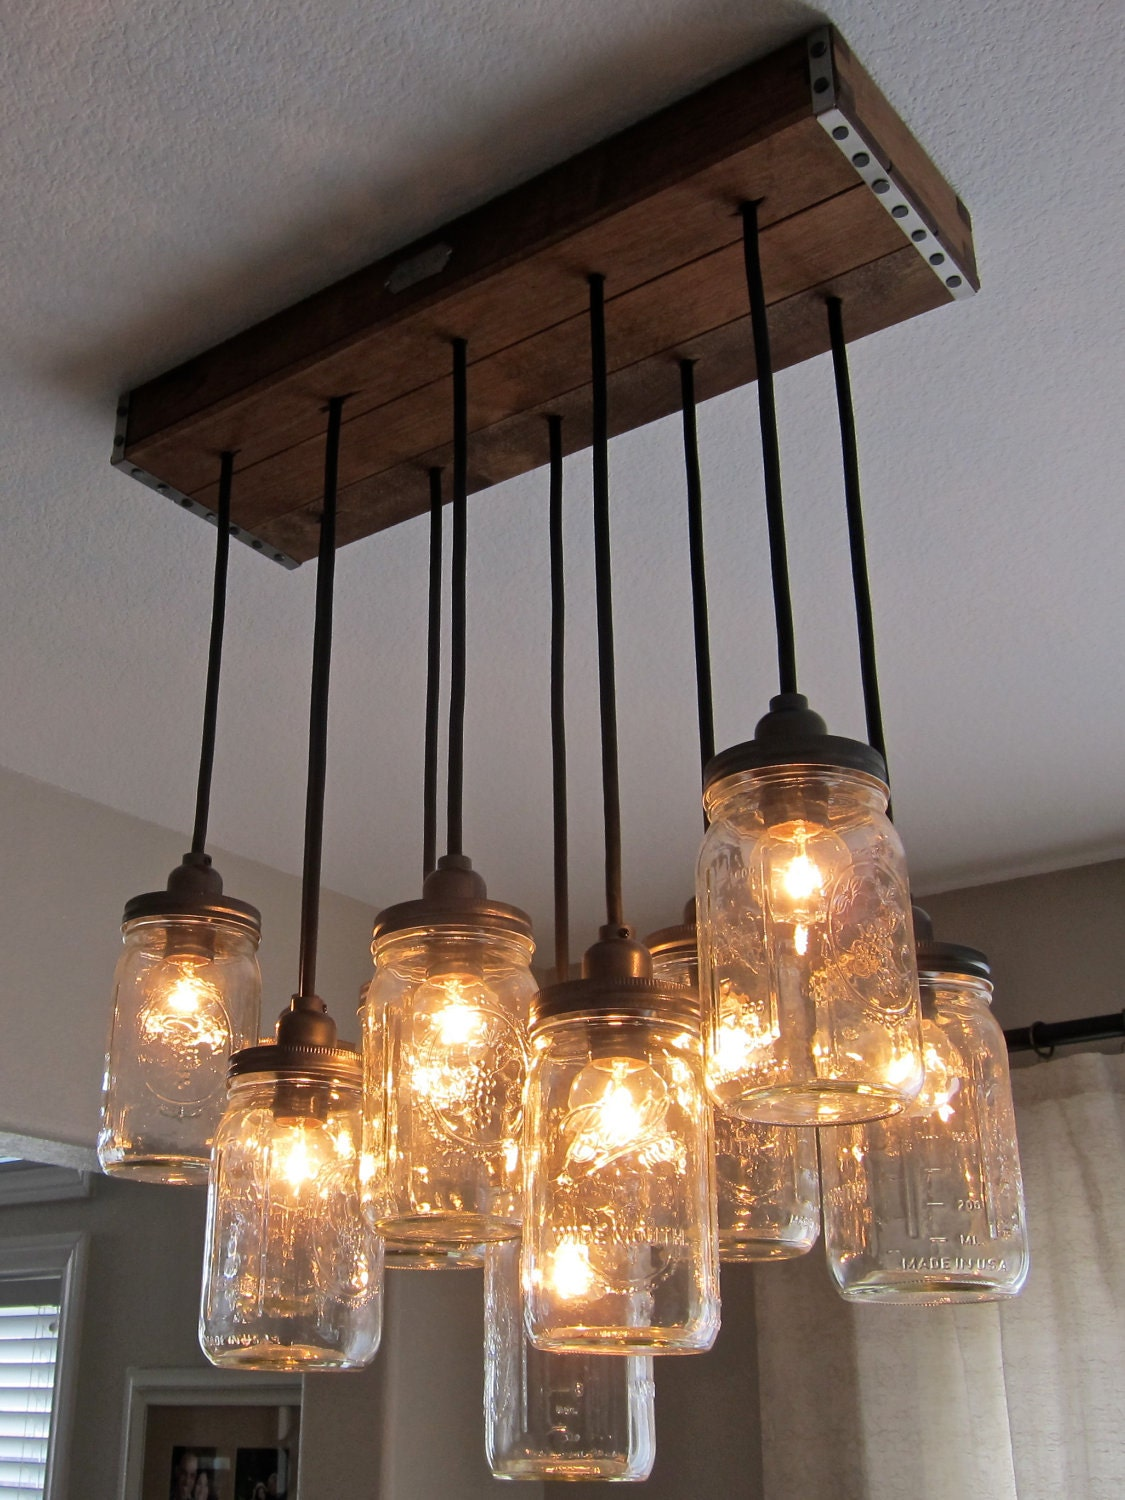 Dining room chandelier replace for pendants community forums - Do it yourself light fixtures ...